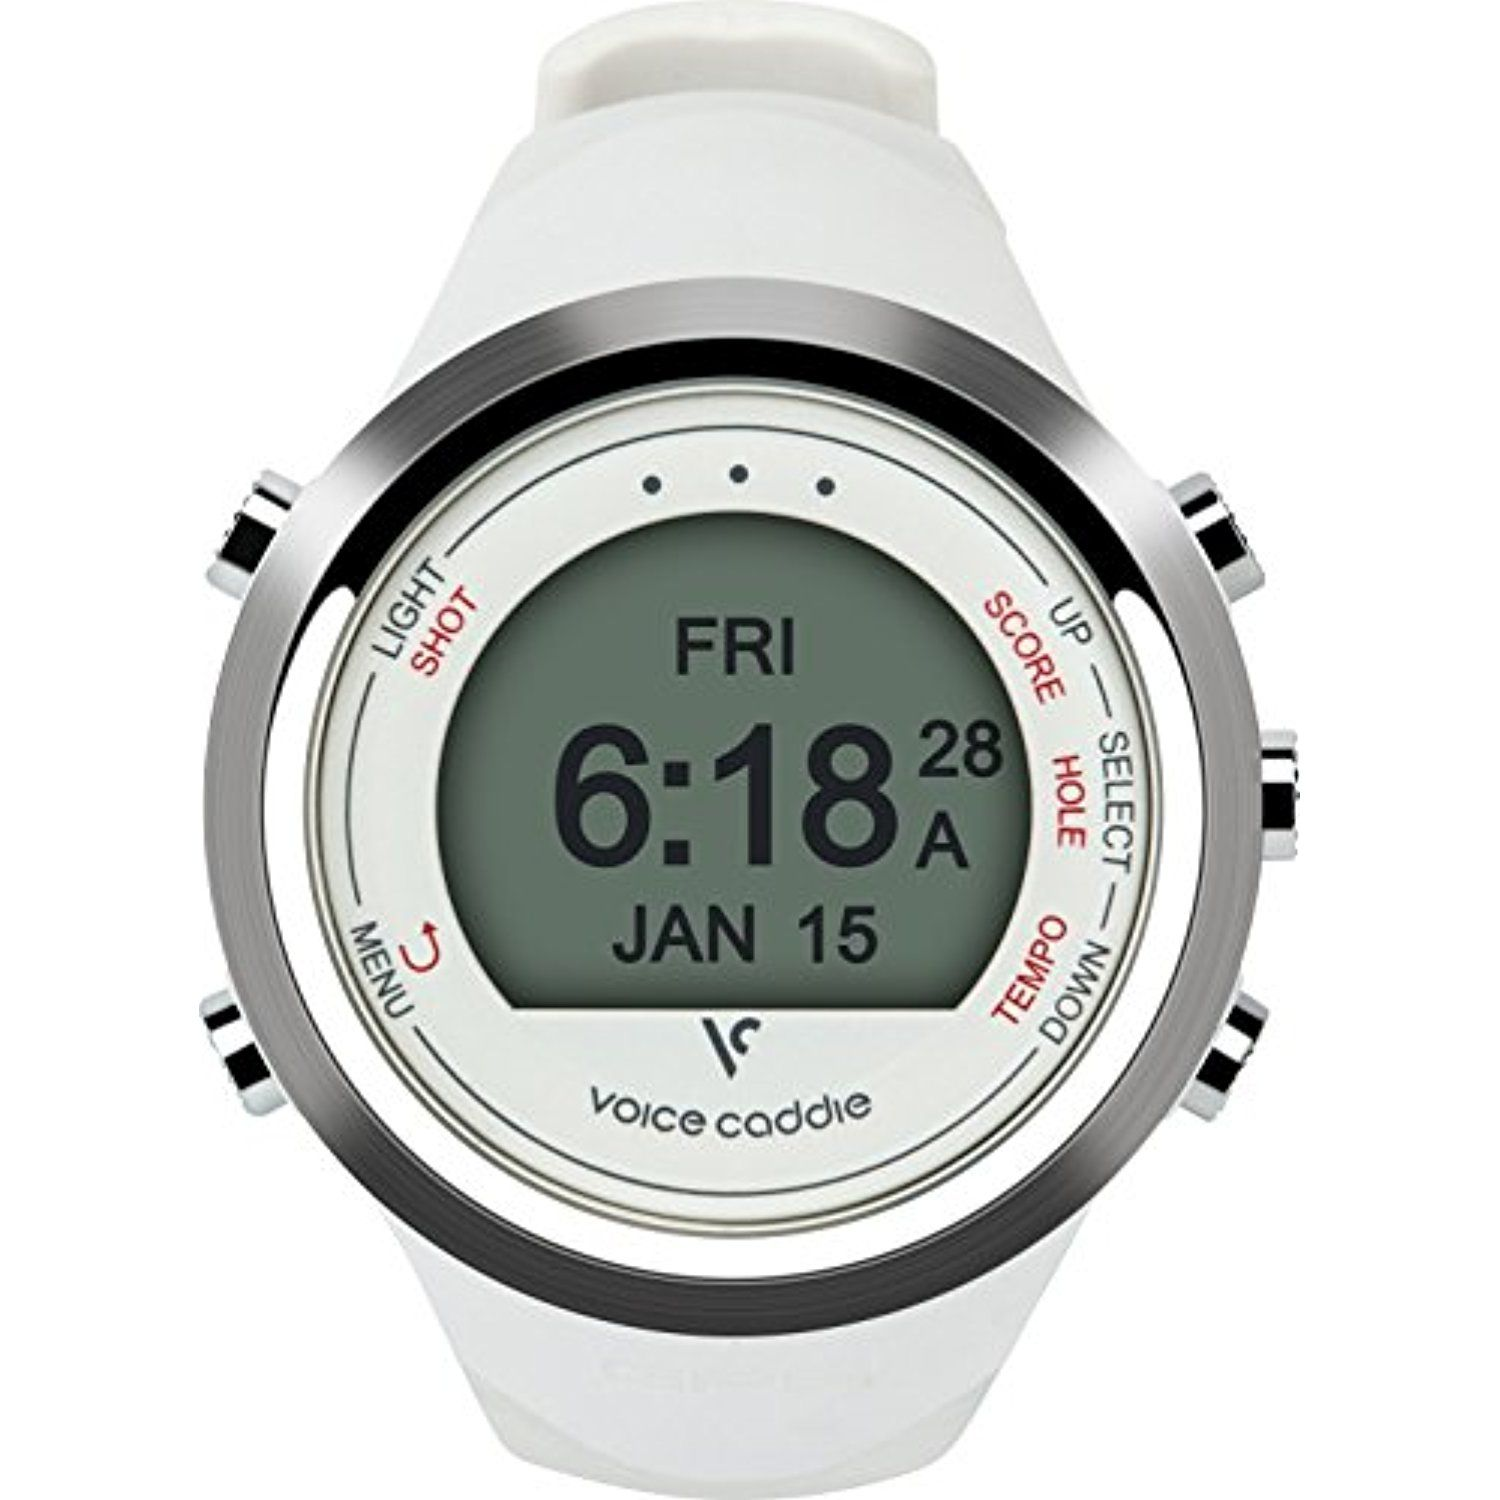 T1 Hybrid Golf GPS Watch Details can be found by